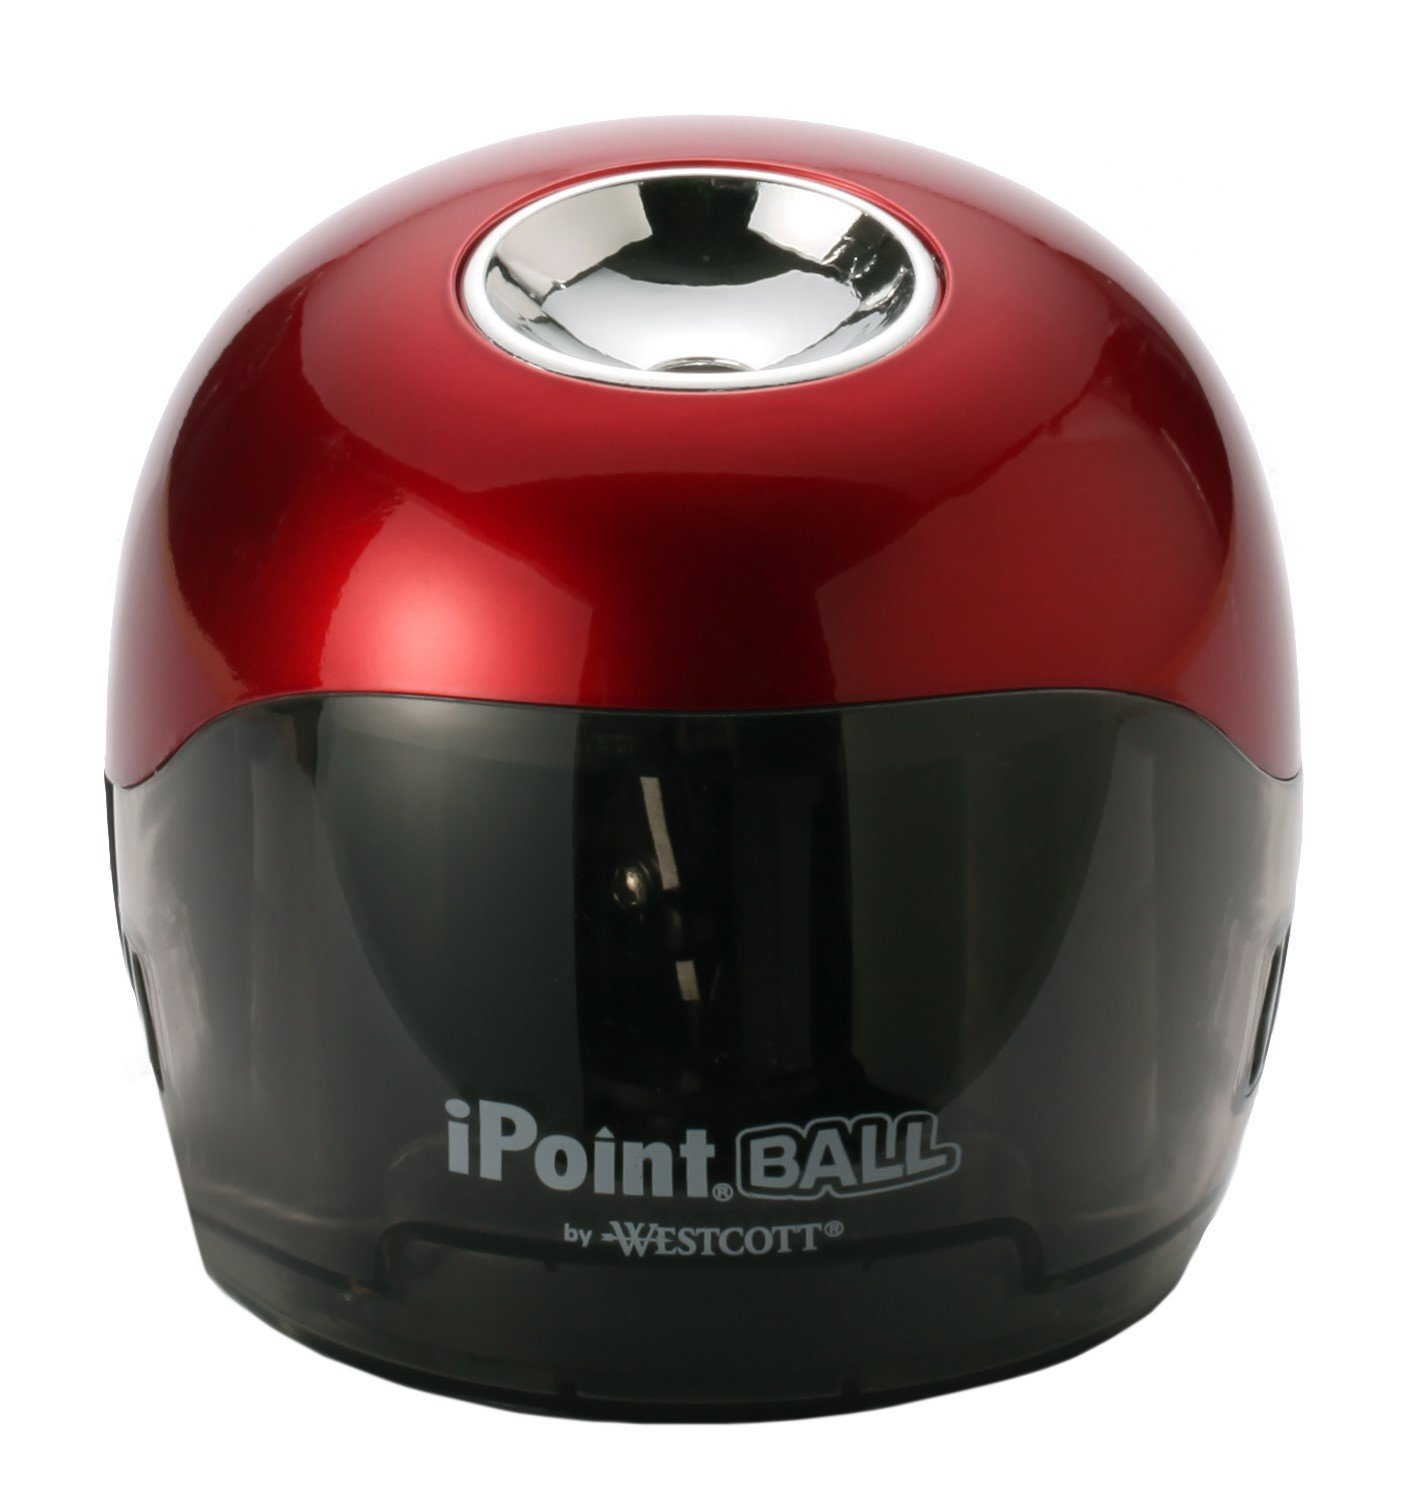 com westcott ipoint ball battery pencil sharpener red com westcott ipoint ball battery pencil sharpener red black 15570 office products